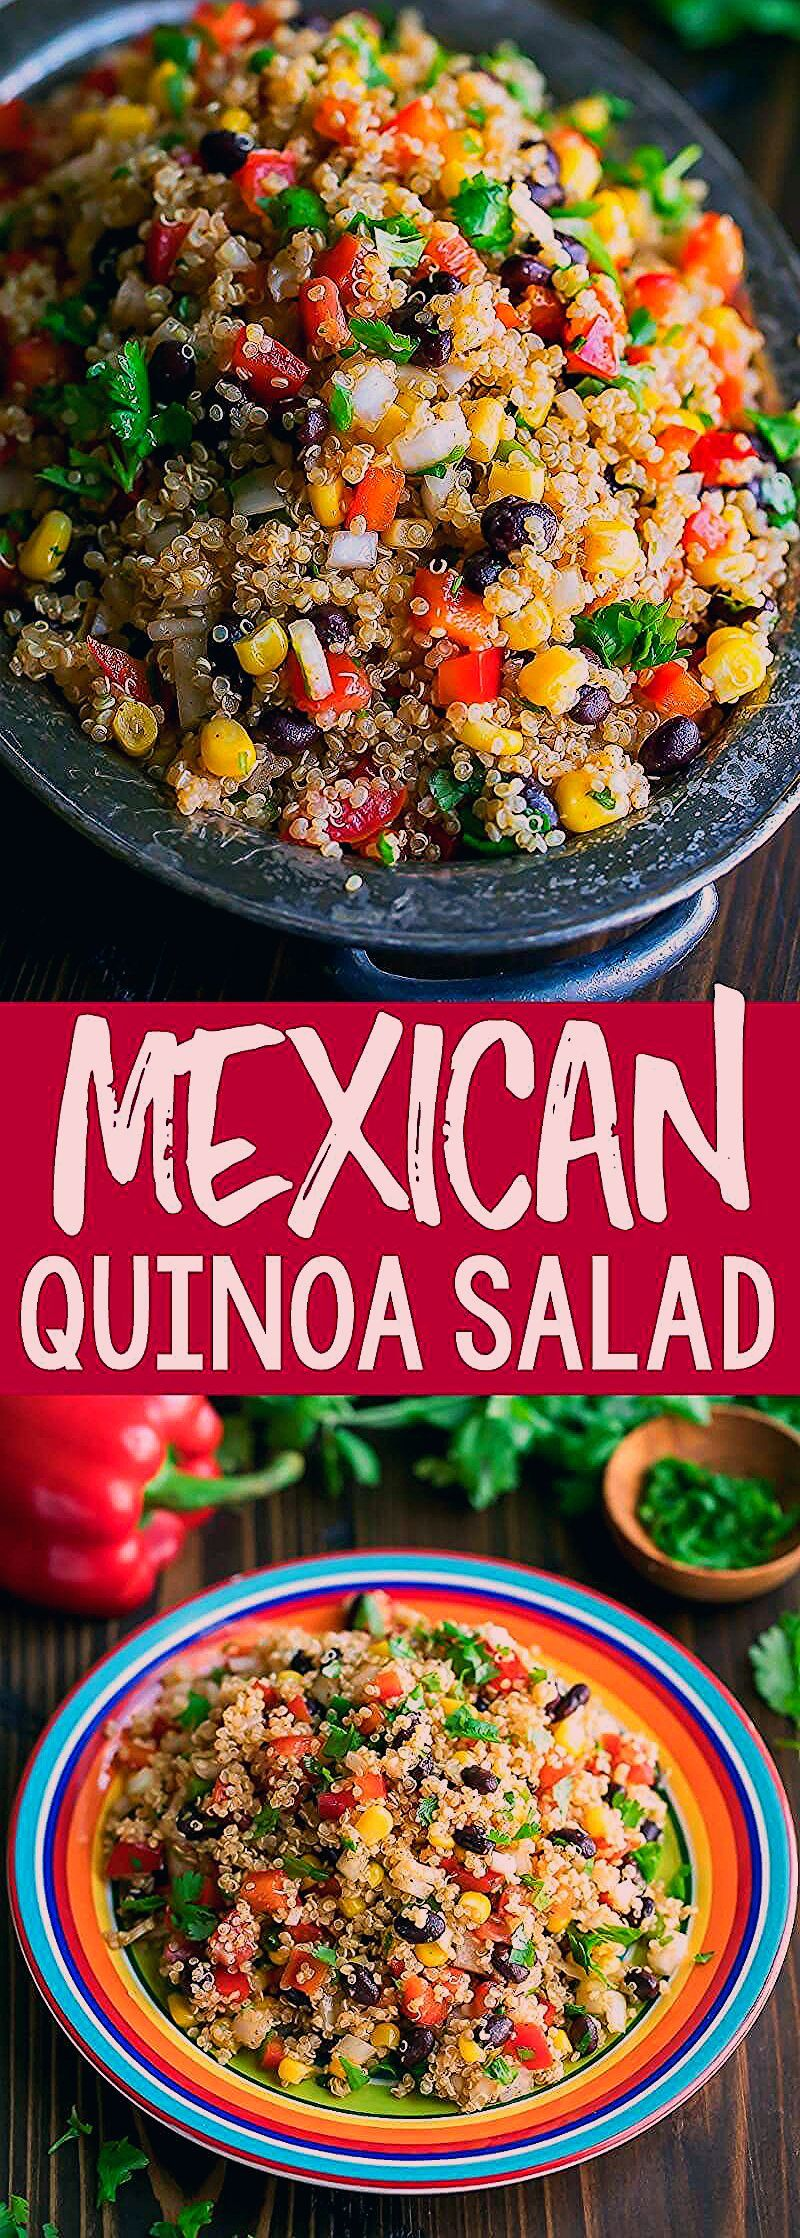 This healthy Mexican Quinoa Salad is a quick, easy, and gloriously make-ahead dish! Tossed in a spe